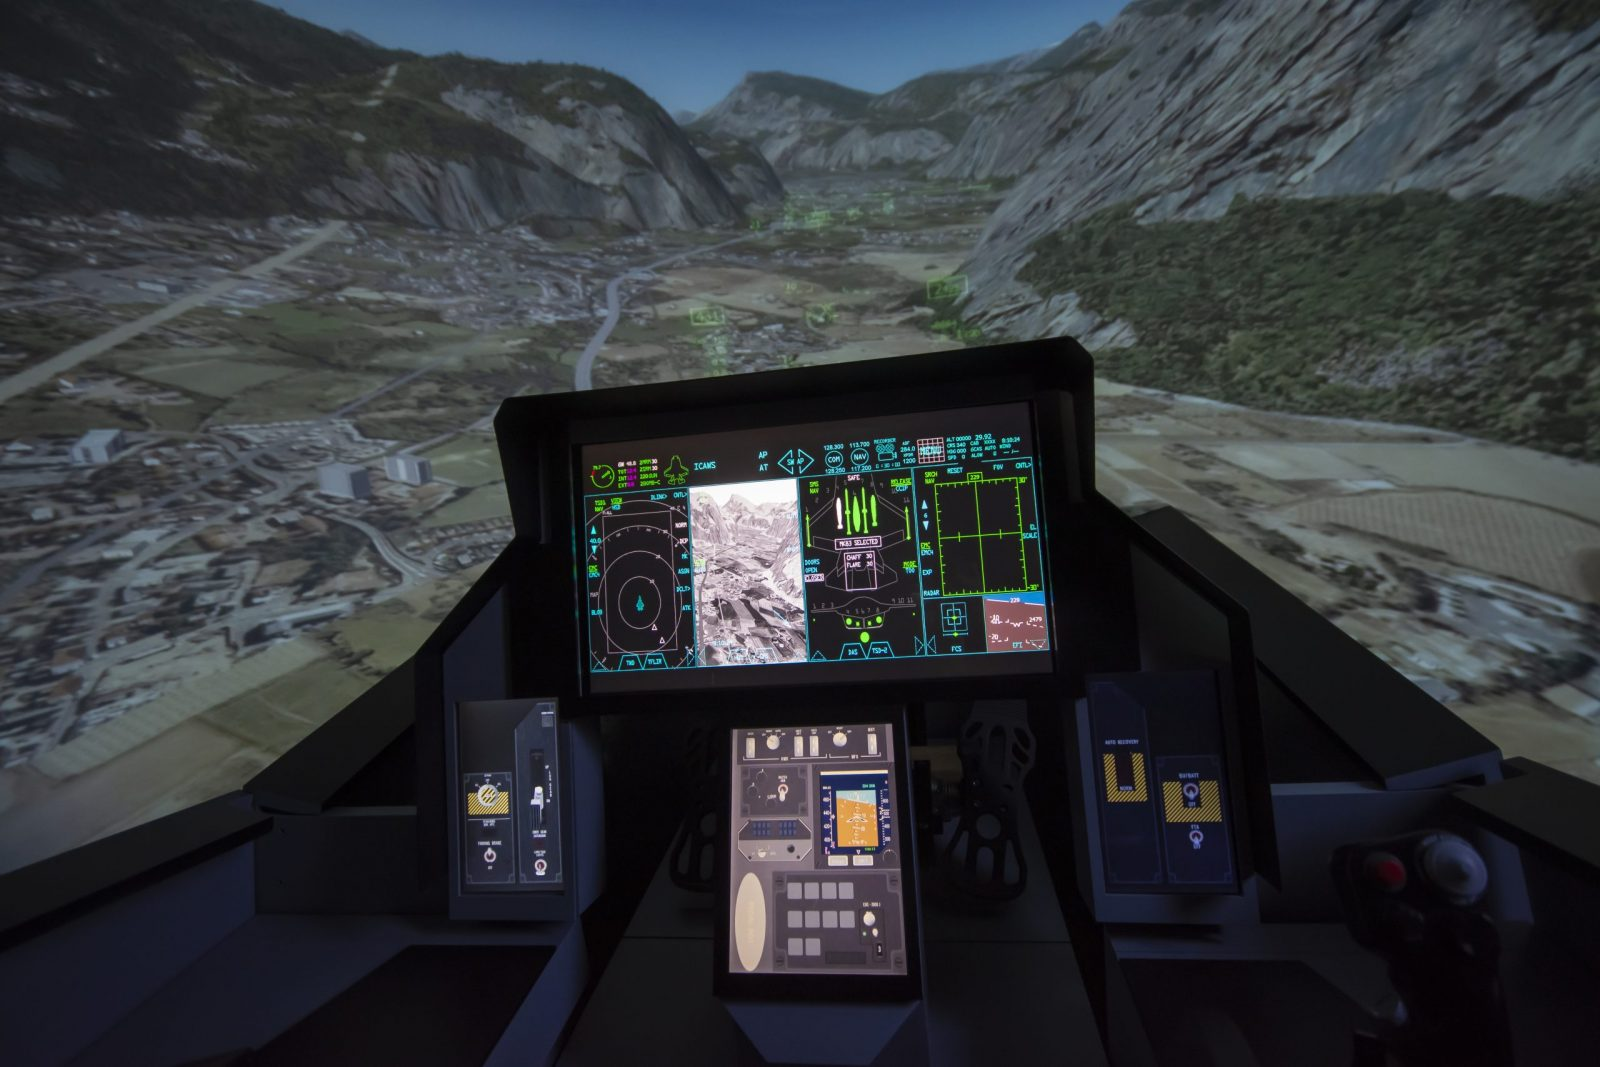 F-18 aircraft simulator with terrain in the background.